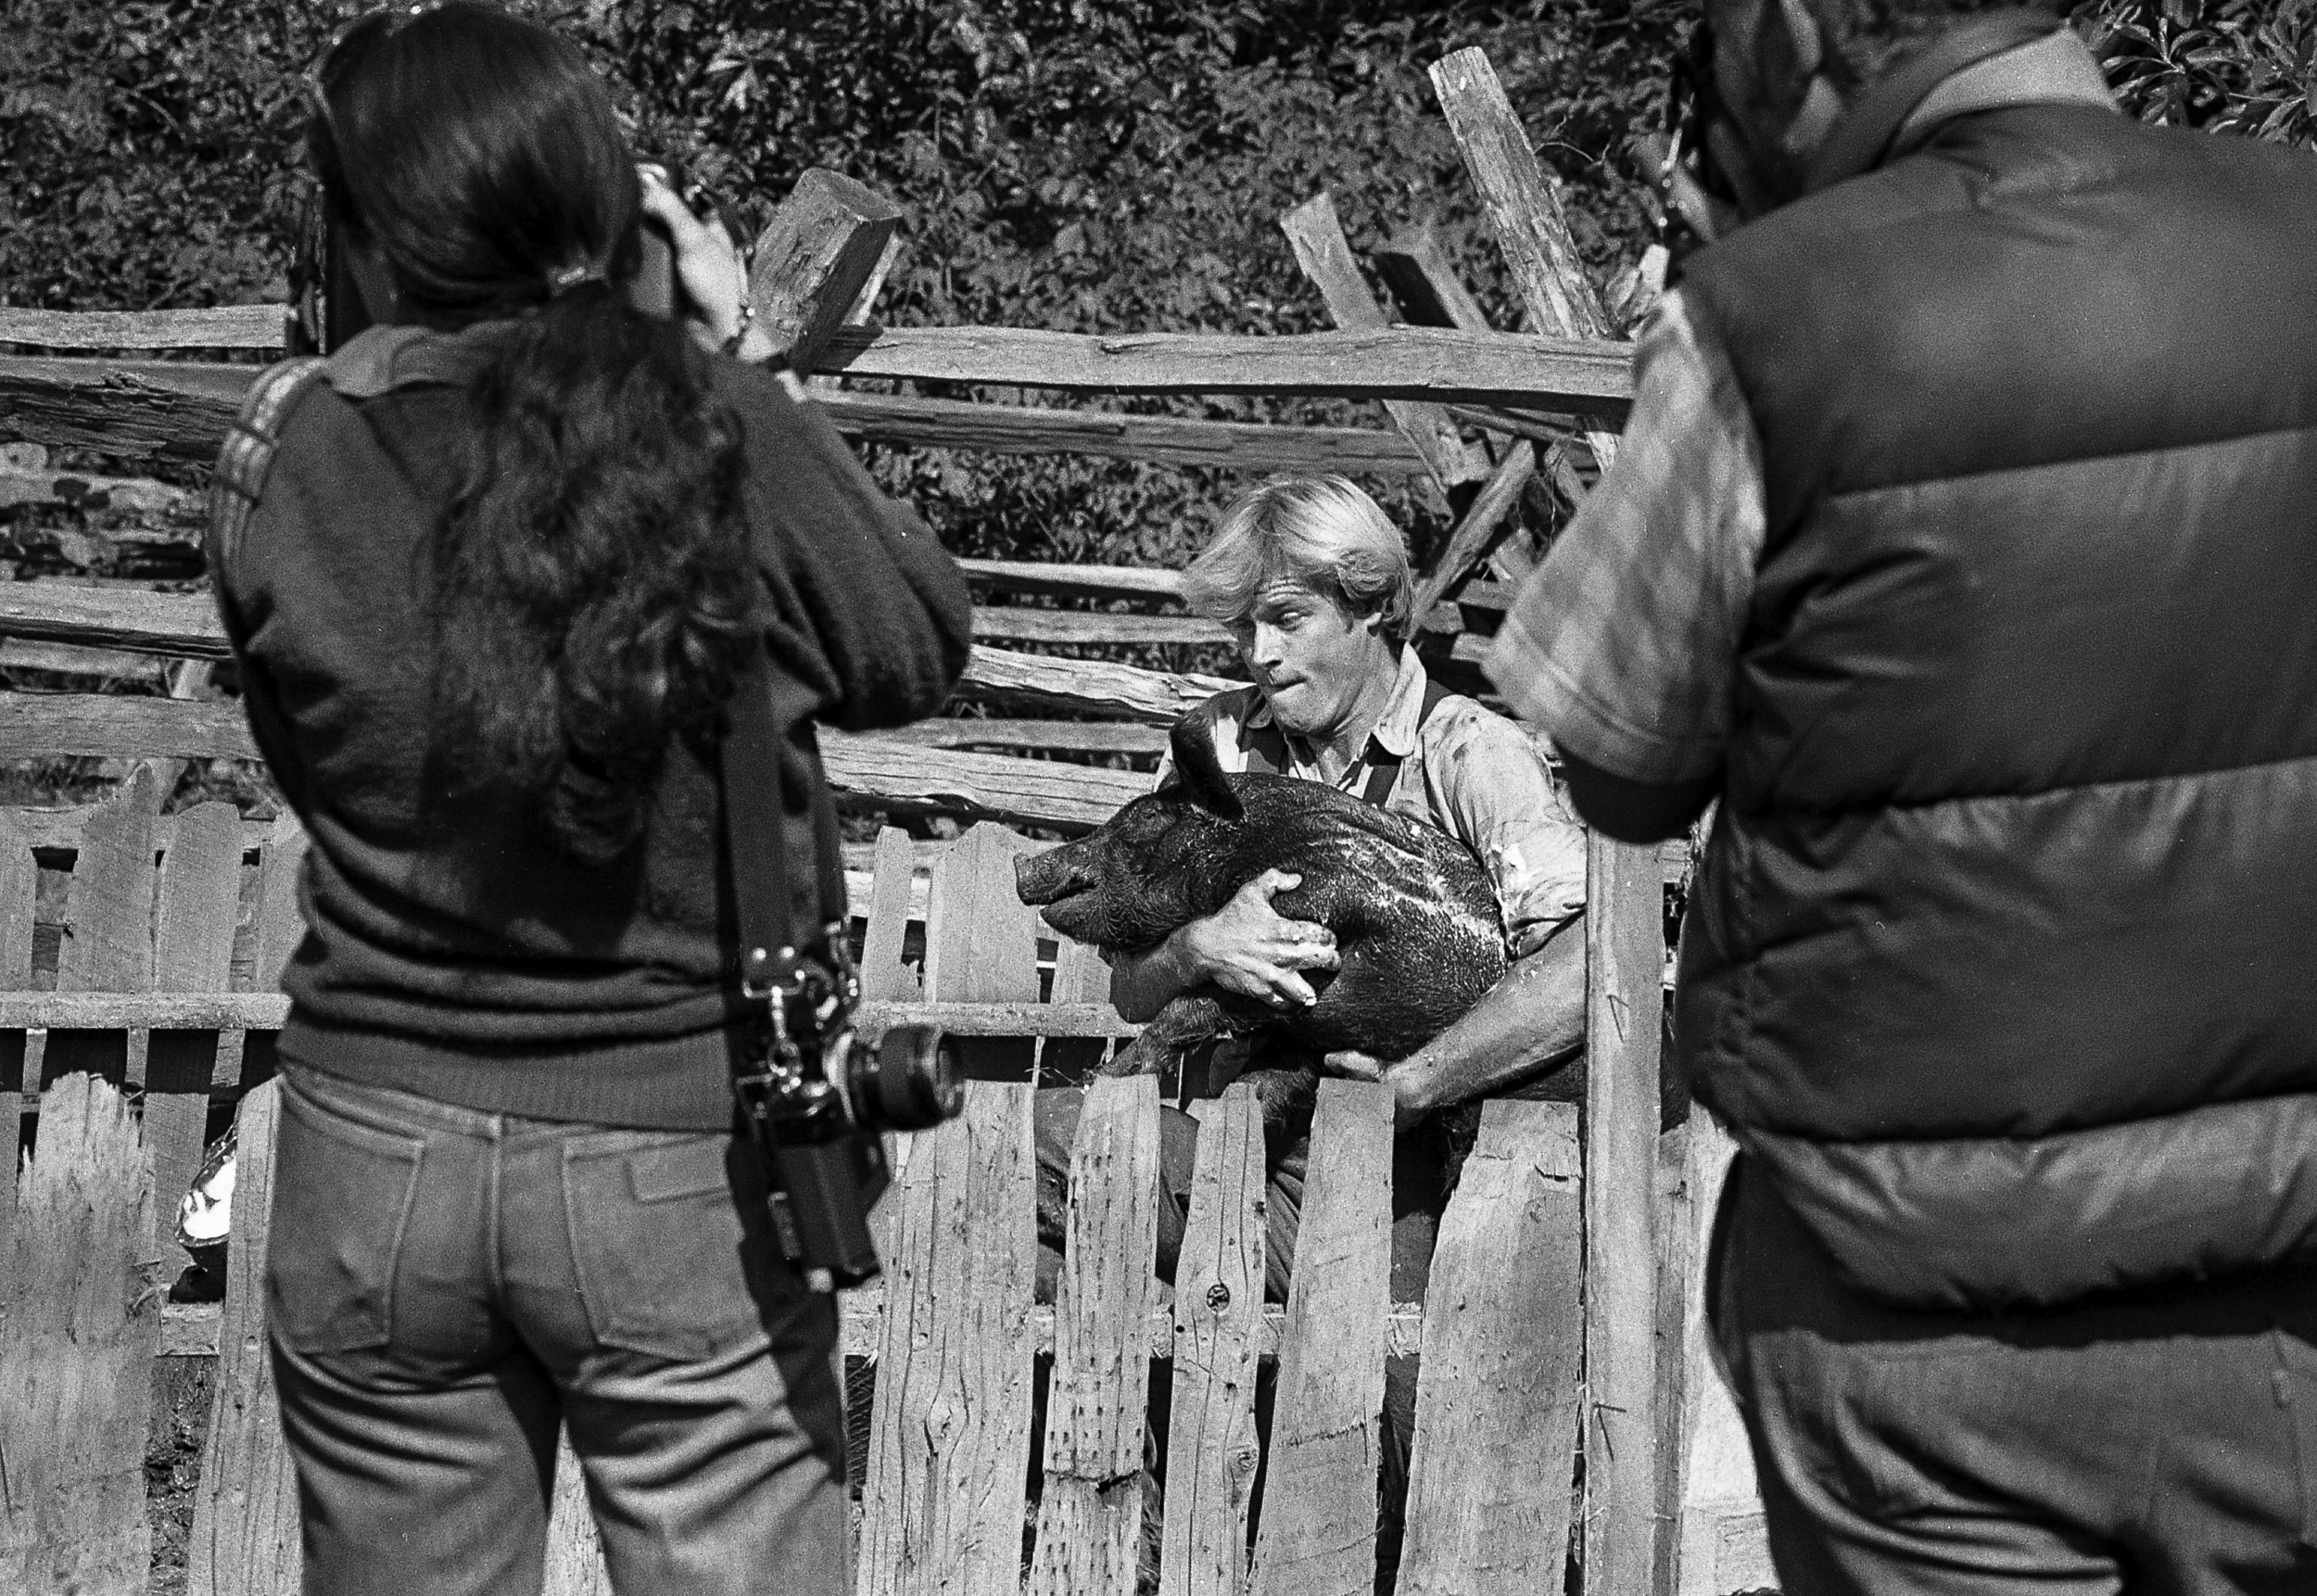 """Brian Kerwin, who plays Gideon Chisholm, wrestles with a pig during a scene for the television mini series """"The Chisholms,"""" filmed at New Salem State Historic Site, October 2, 1978. File/Bill Hagen/The State Journal-Register"""